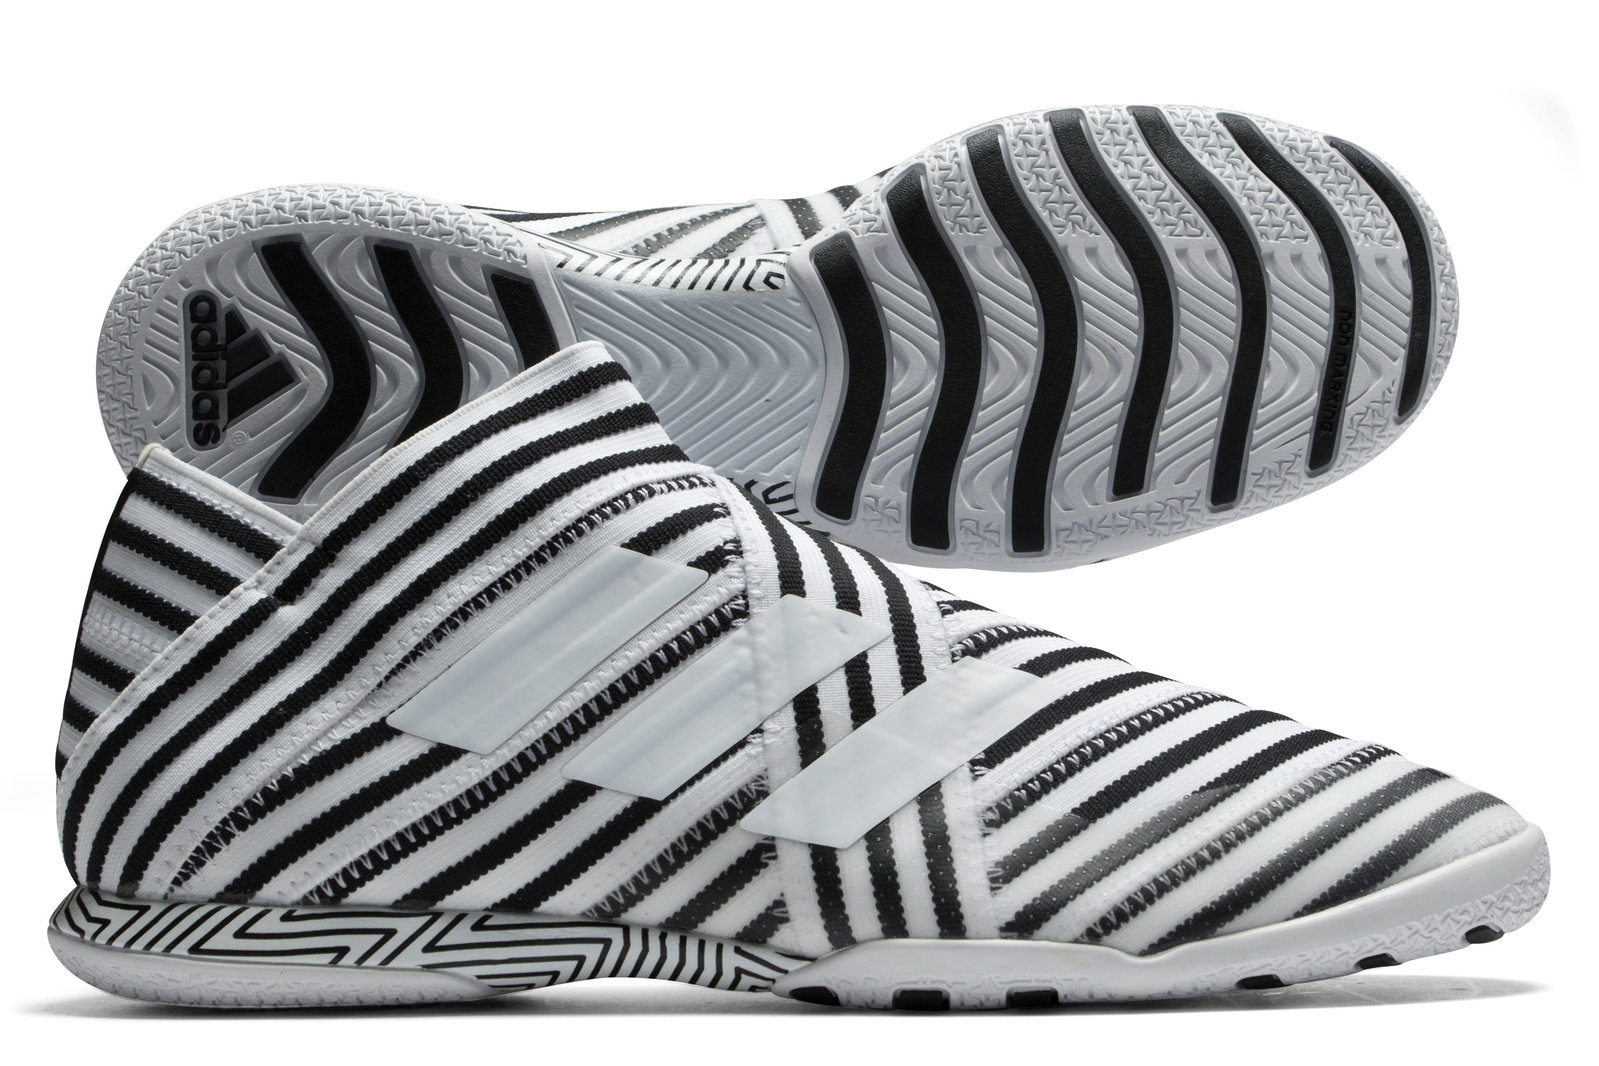 1265c4d65 adidas Mens Nemeziz Tango 17+ 360 Agility Indoor Football Trainers Shoe  Training